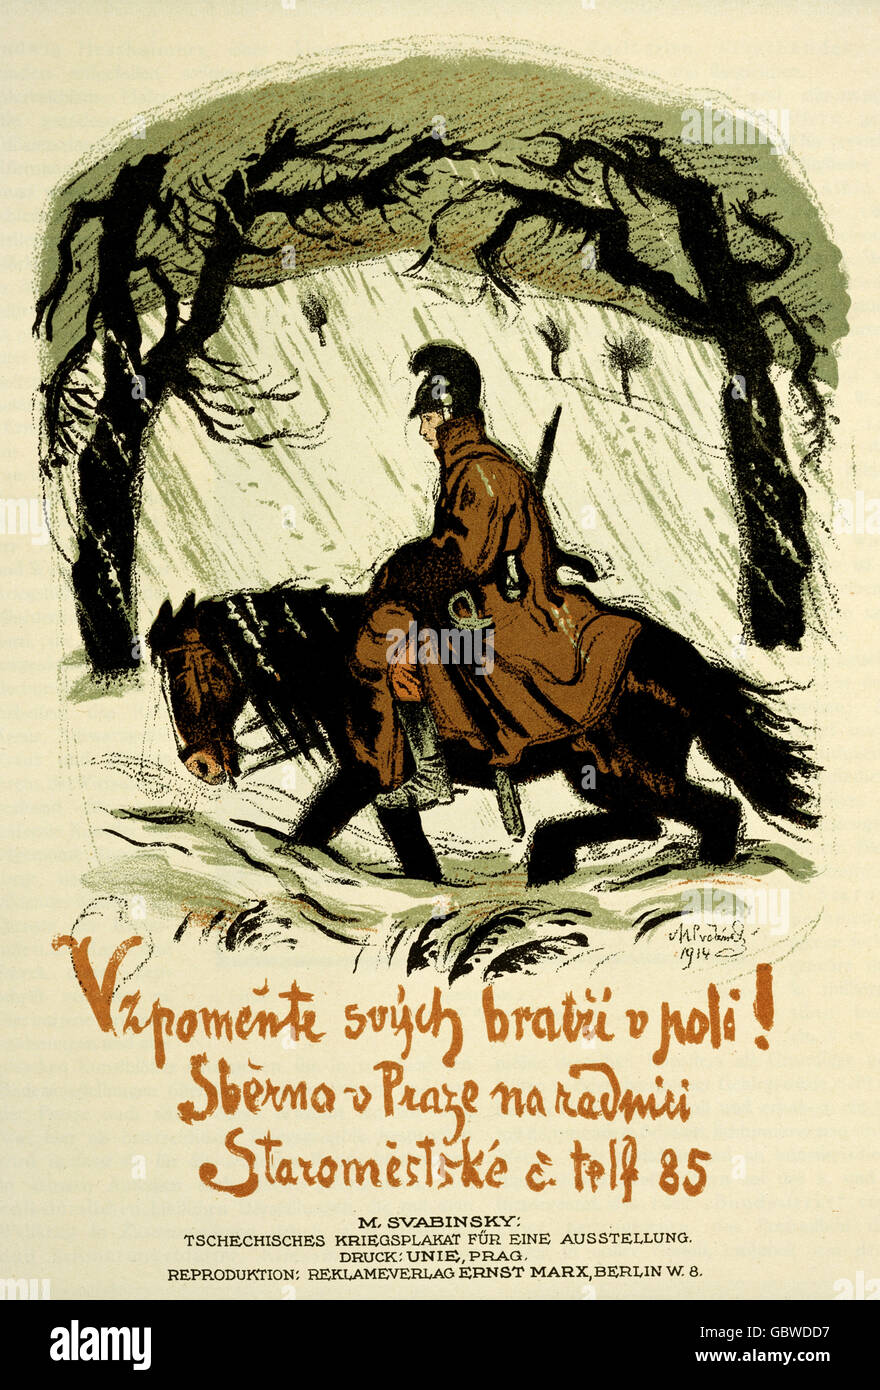 events, First World War / WWI, propaganda, Austria-Hungary, poster for an exhibition of Czech artists at war, by - Stock Image